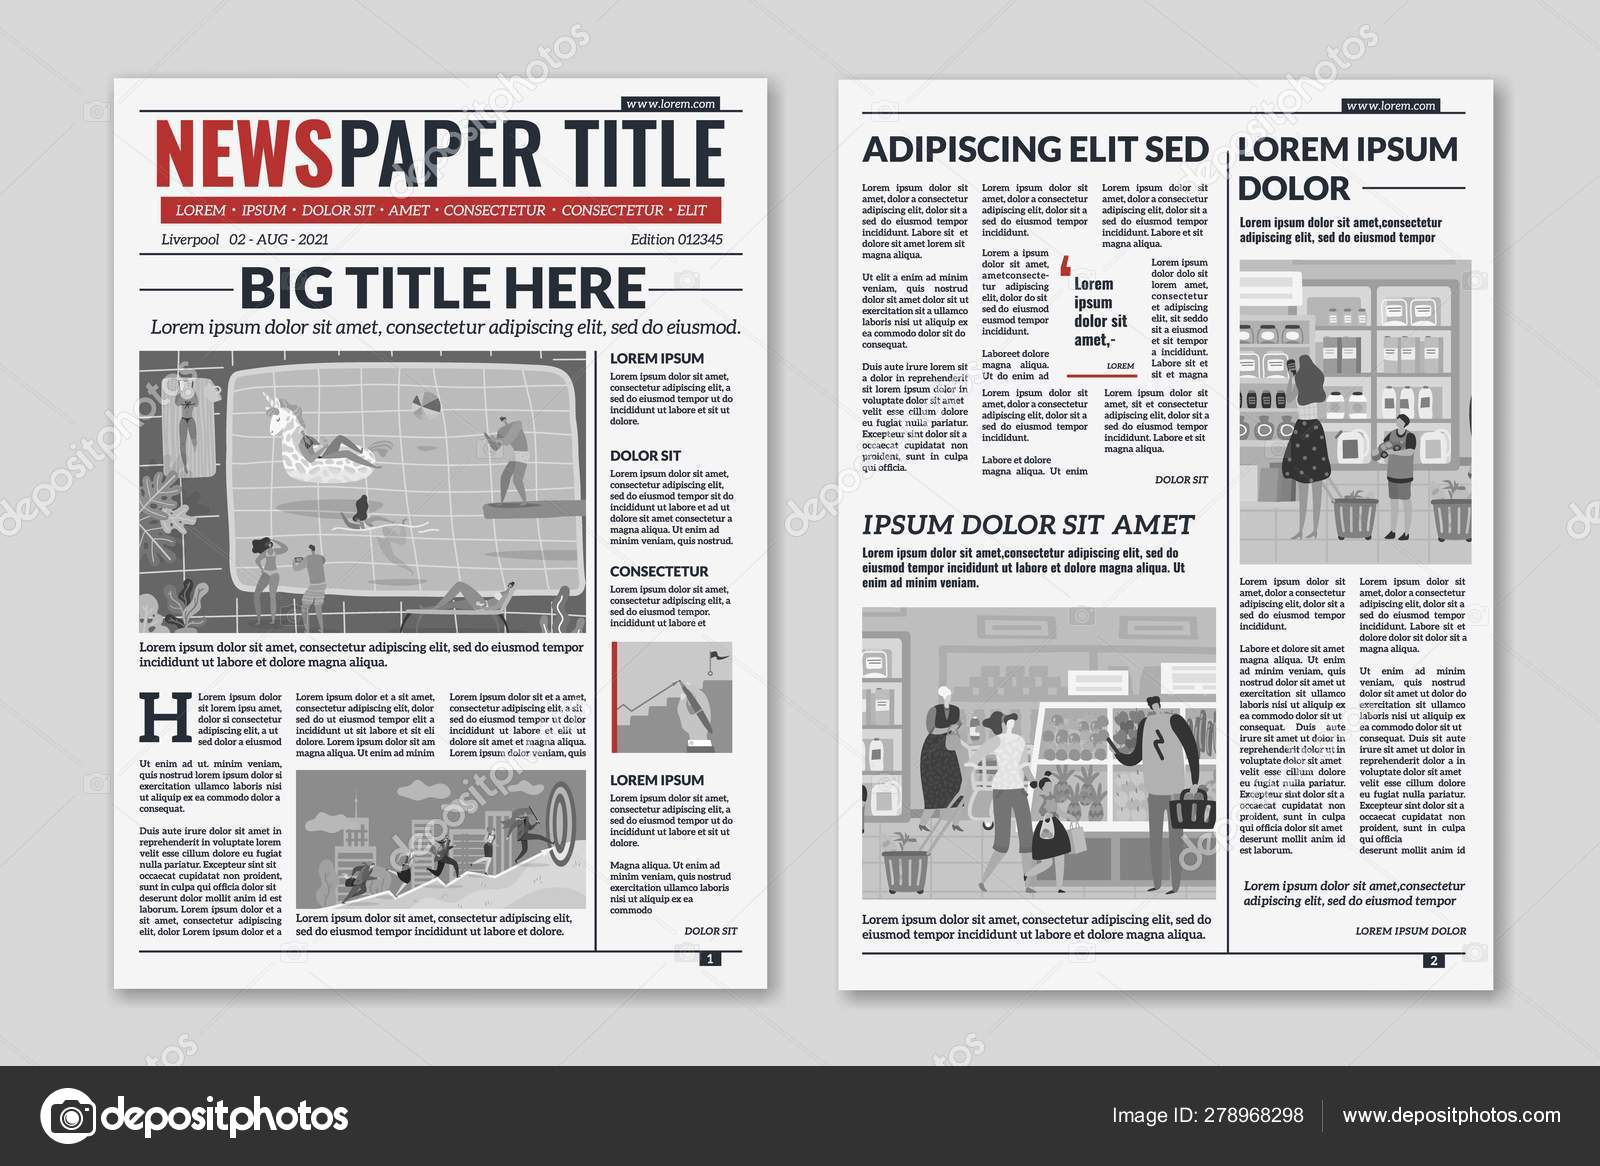 Newspaper Layout Template from st4.depositphotos.com